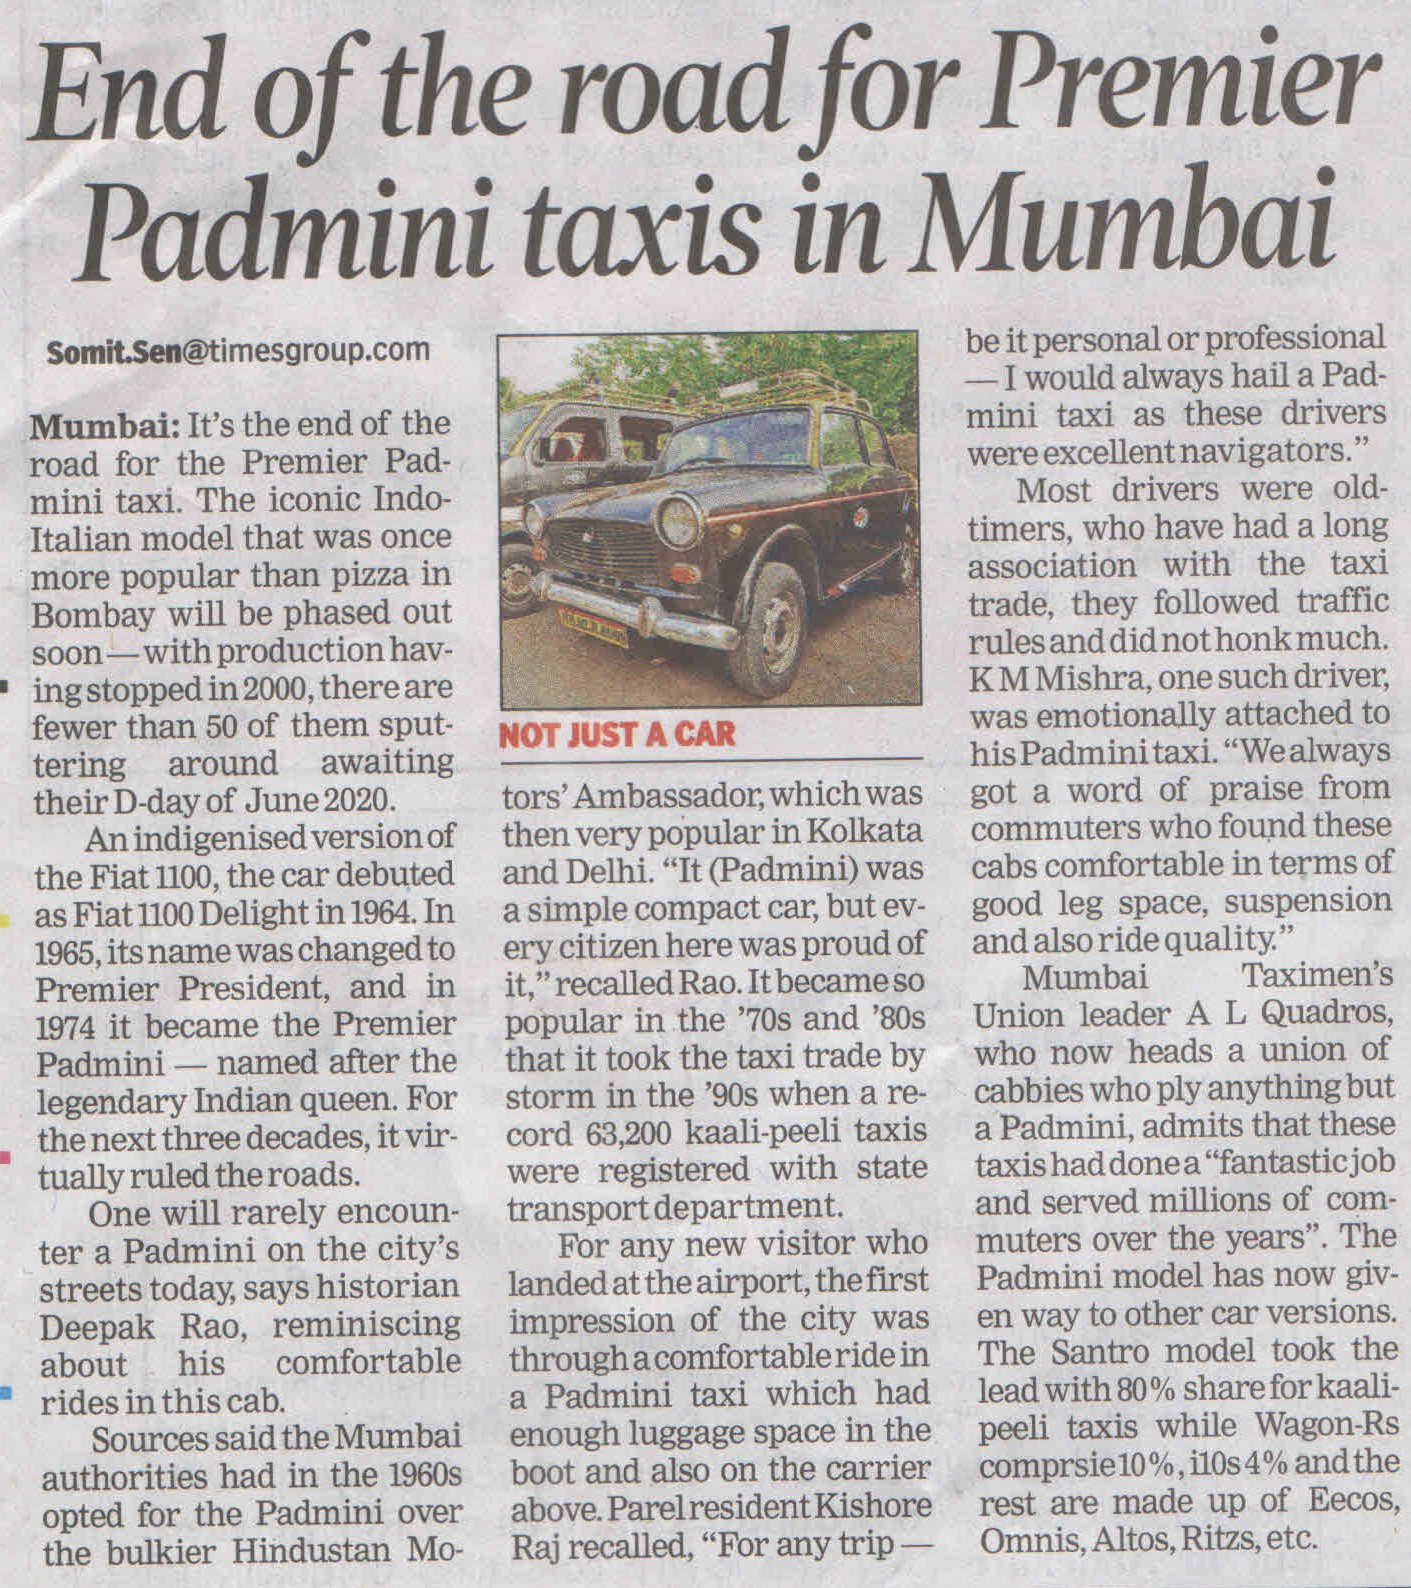 End of th4e road for Premier Padmini taxis in Mumbai